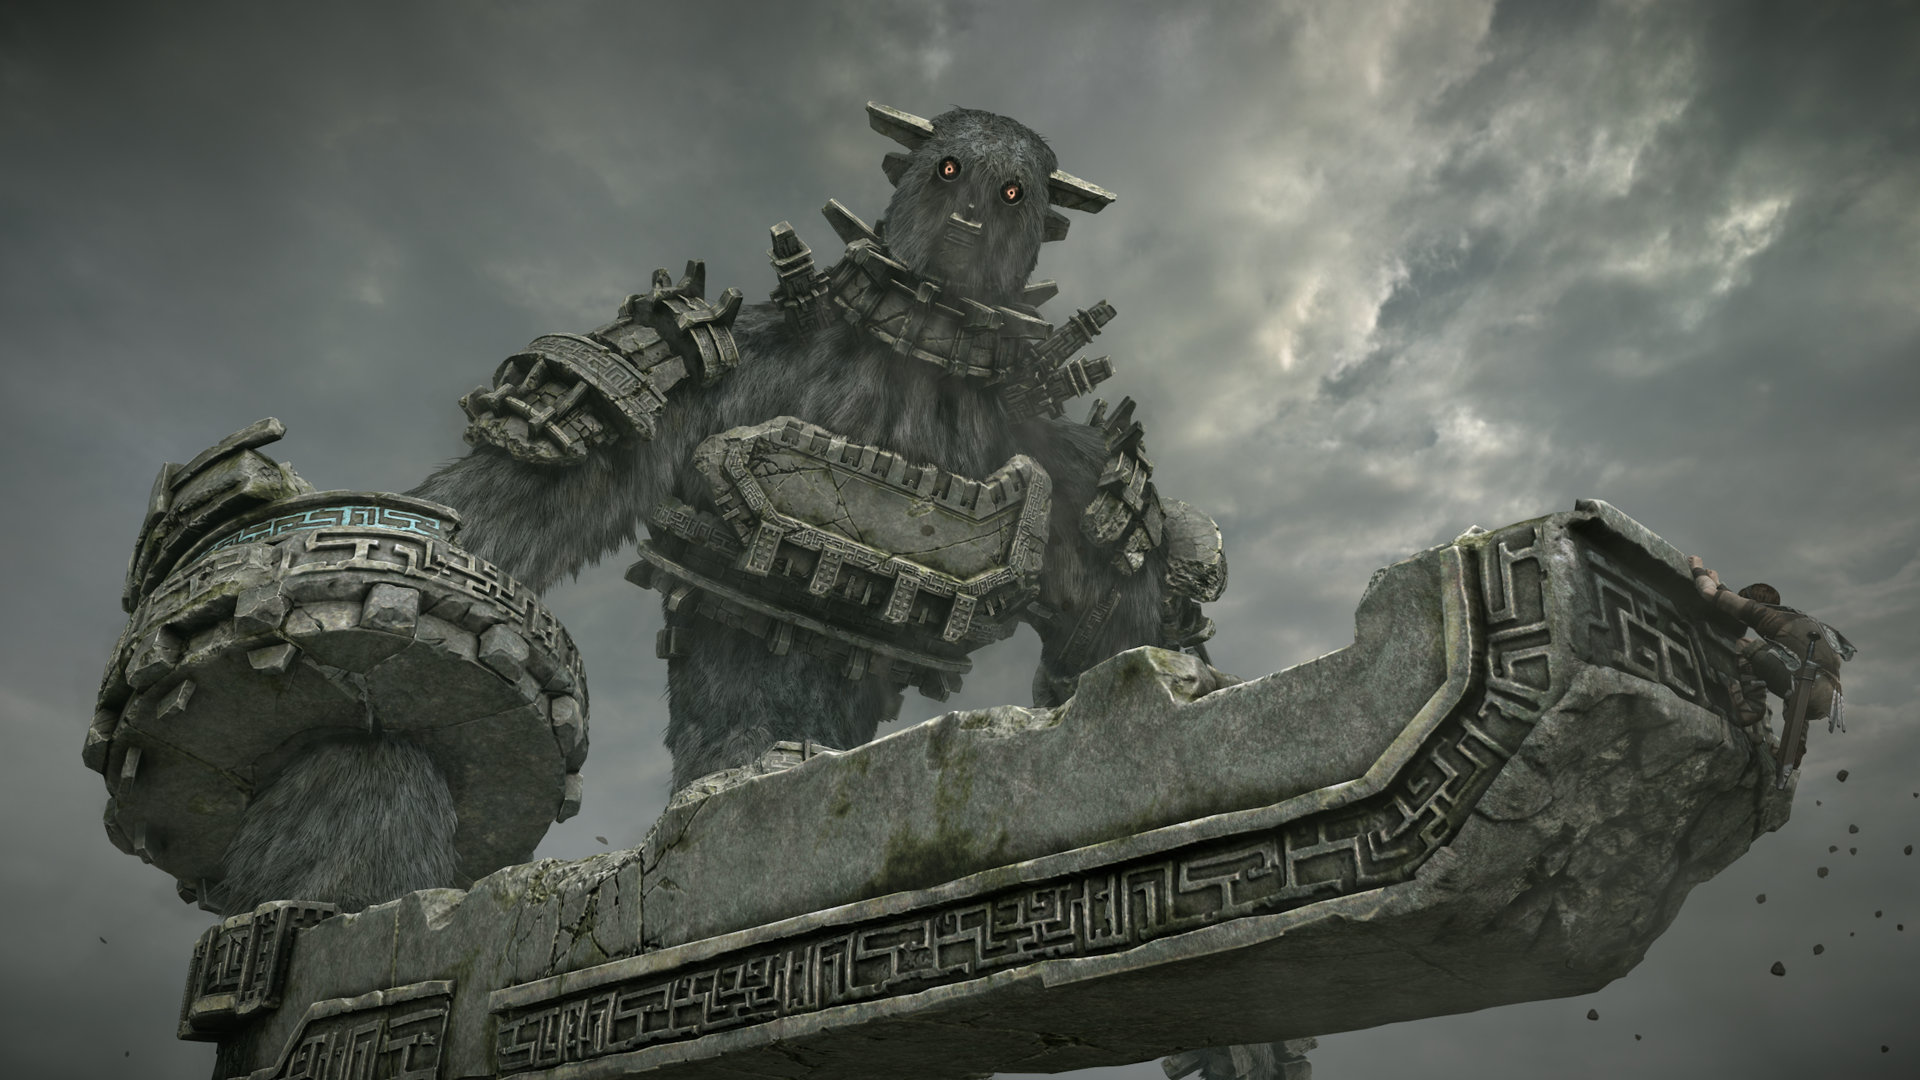 shadow-of-the-colossus-screen-01-ps4-eu-30oct17